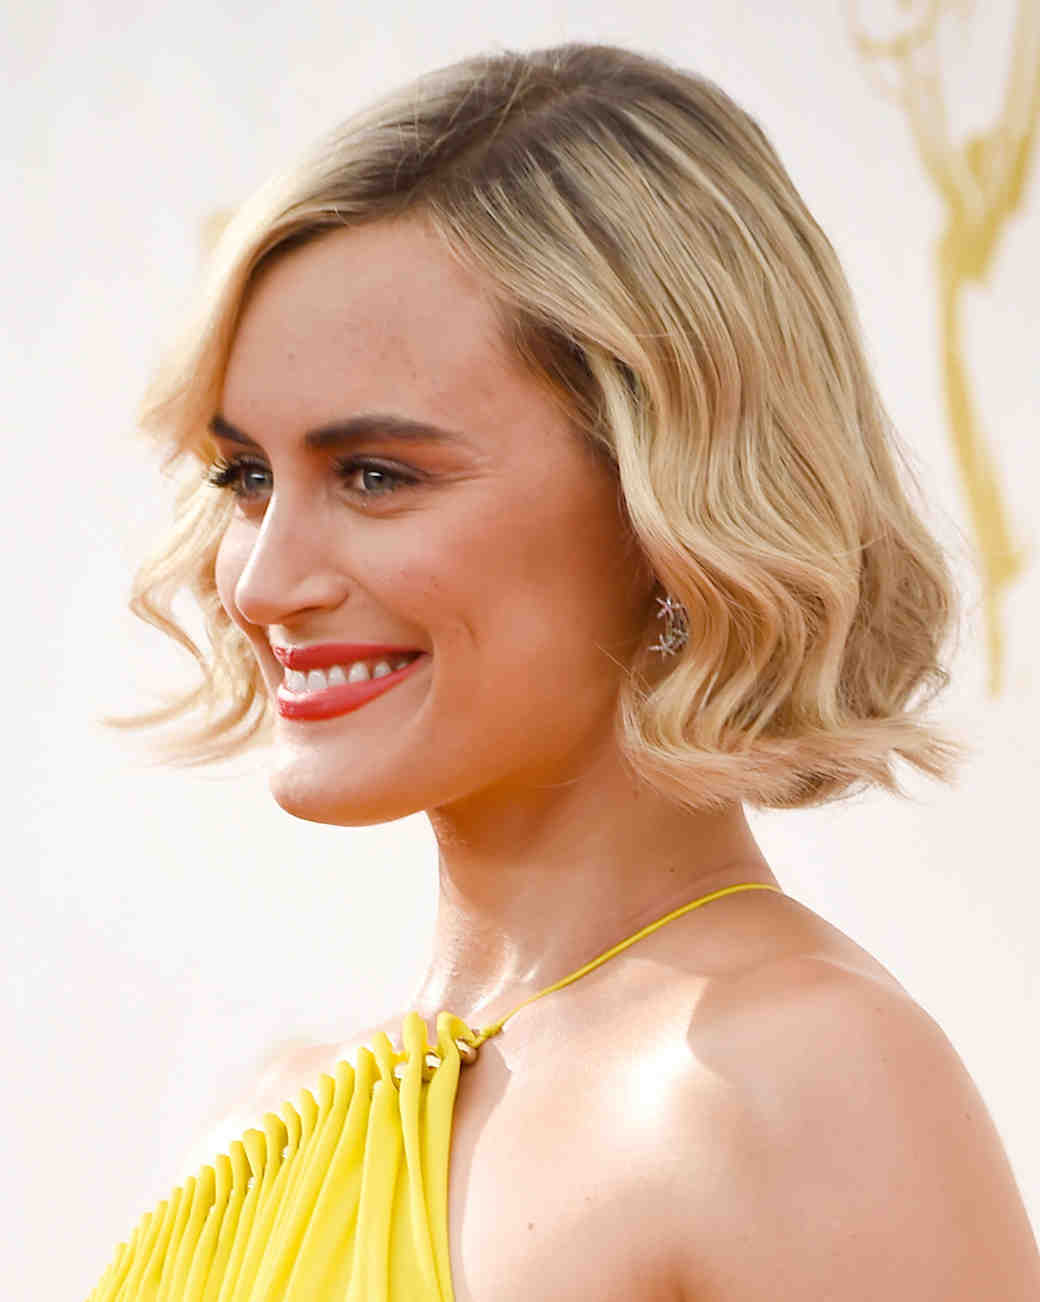 celebrity-wedding-hair-taylor-schilling-emmys-gettyimages-489368532-0915.jpg